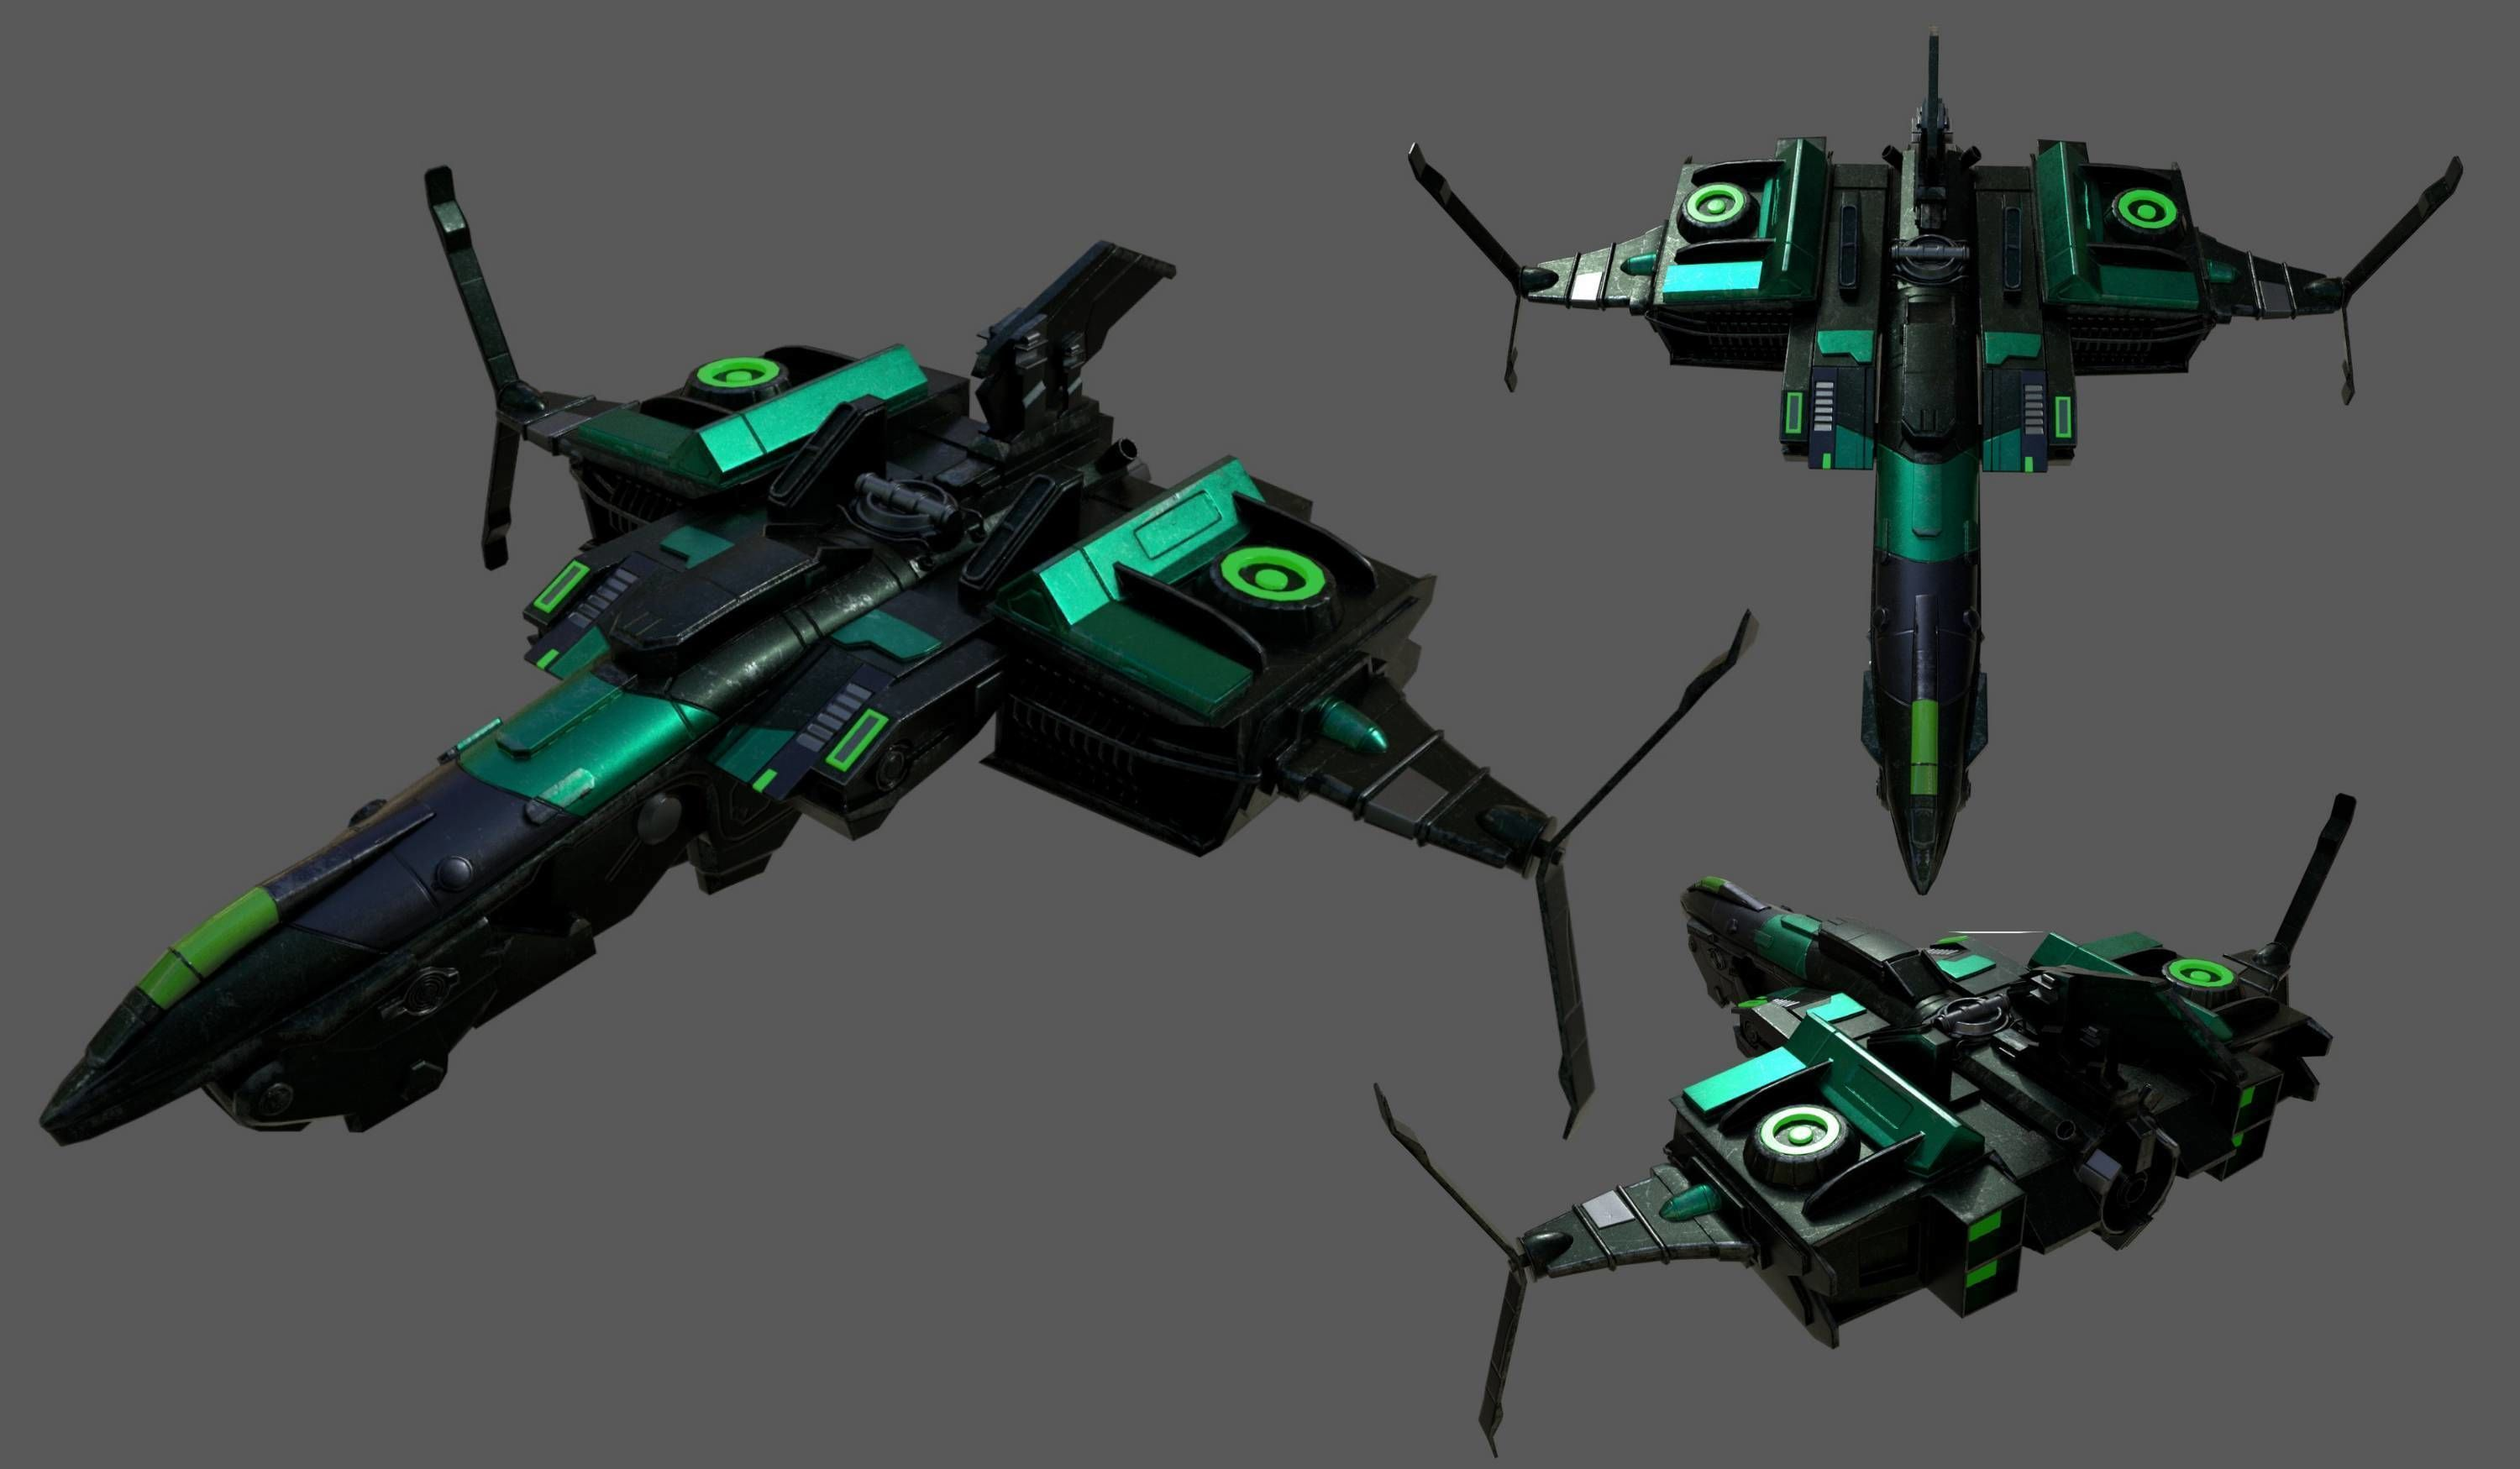 spaceship-commander-starship-combat-low-poly-space-fantasy-3d-model-low-poly-obj-fbx-ma | 3d artist